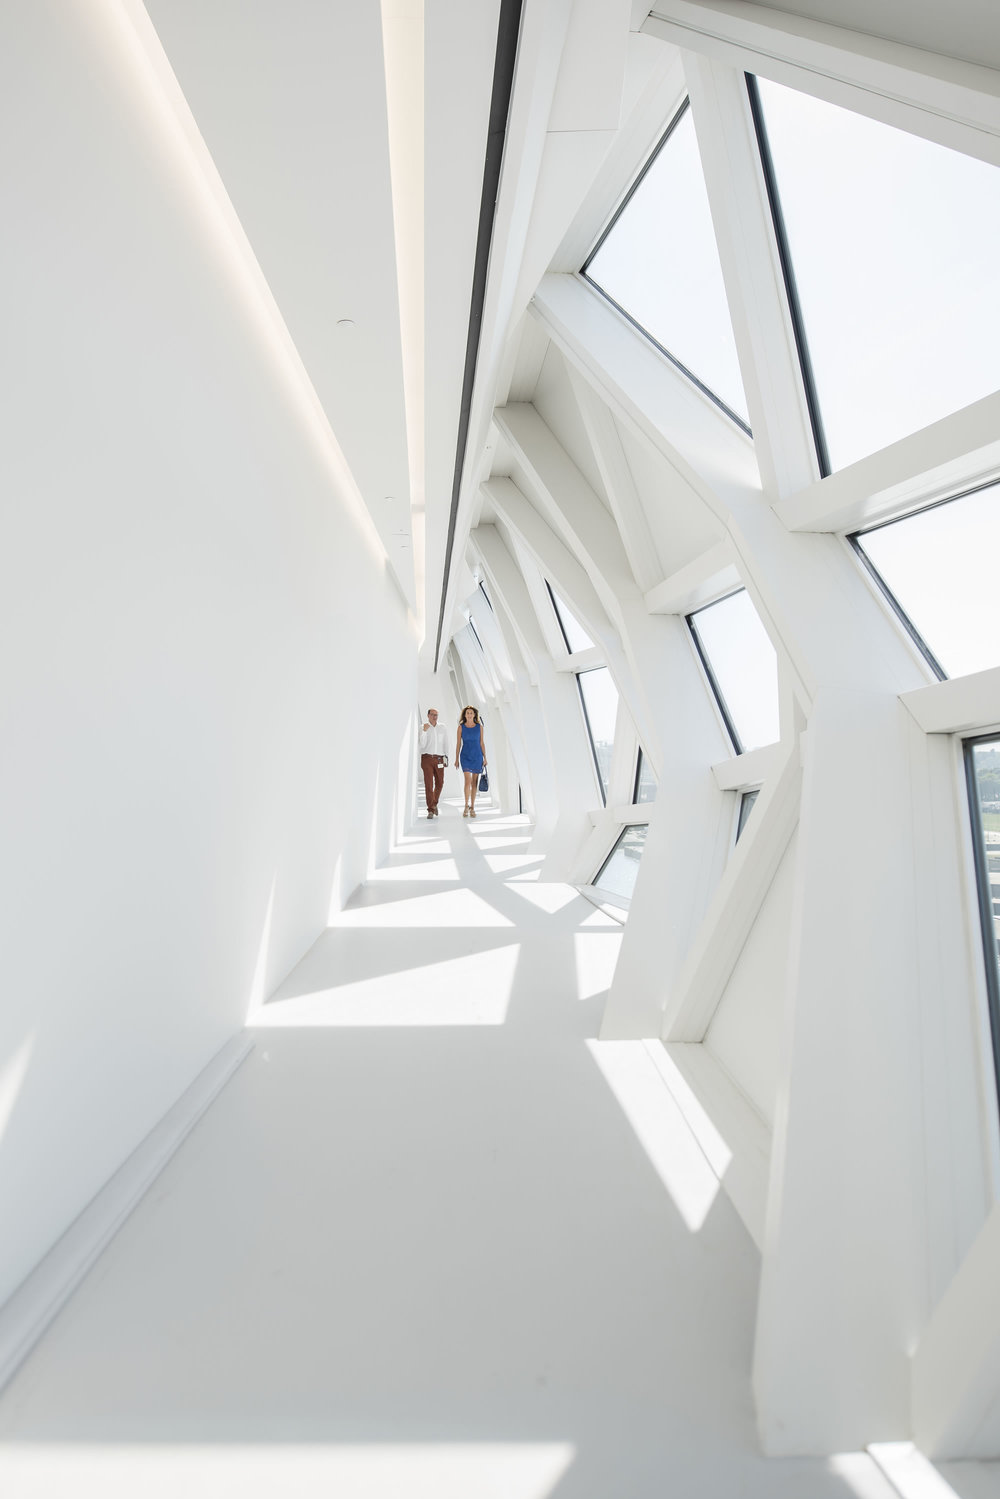 ZHA_Port House Antwerp_Corridor ∏ Tim Fisher 2016.jpg